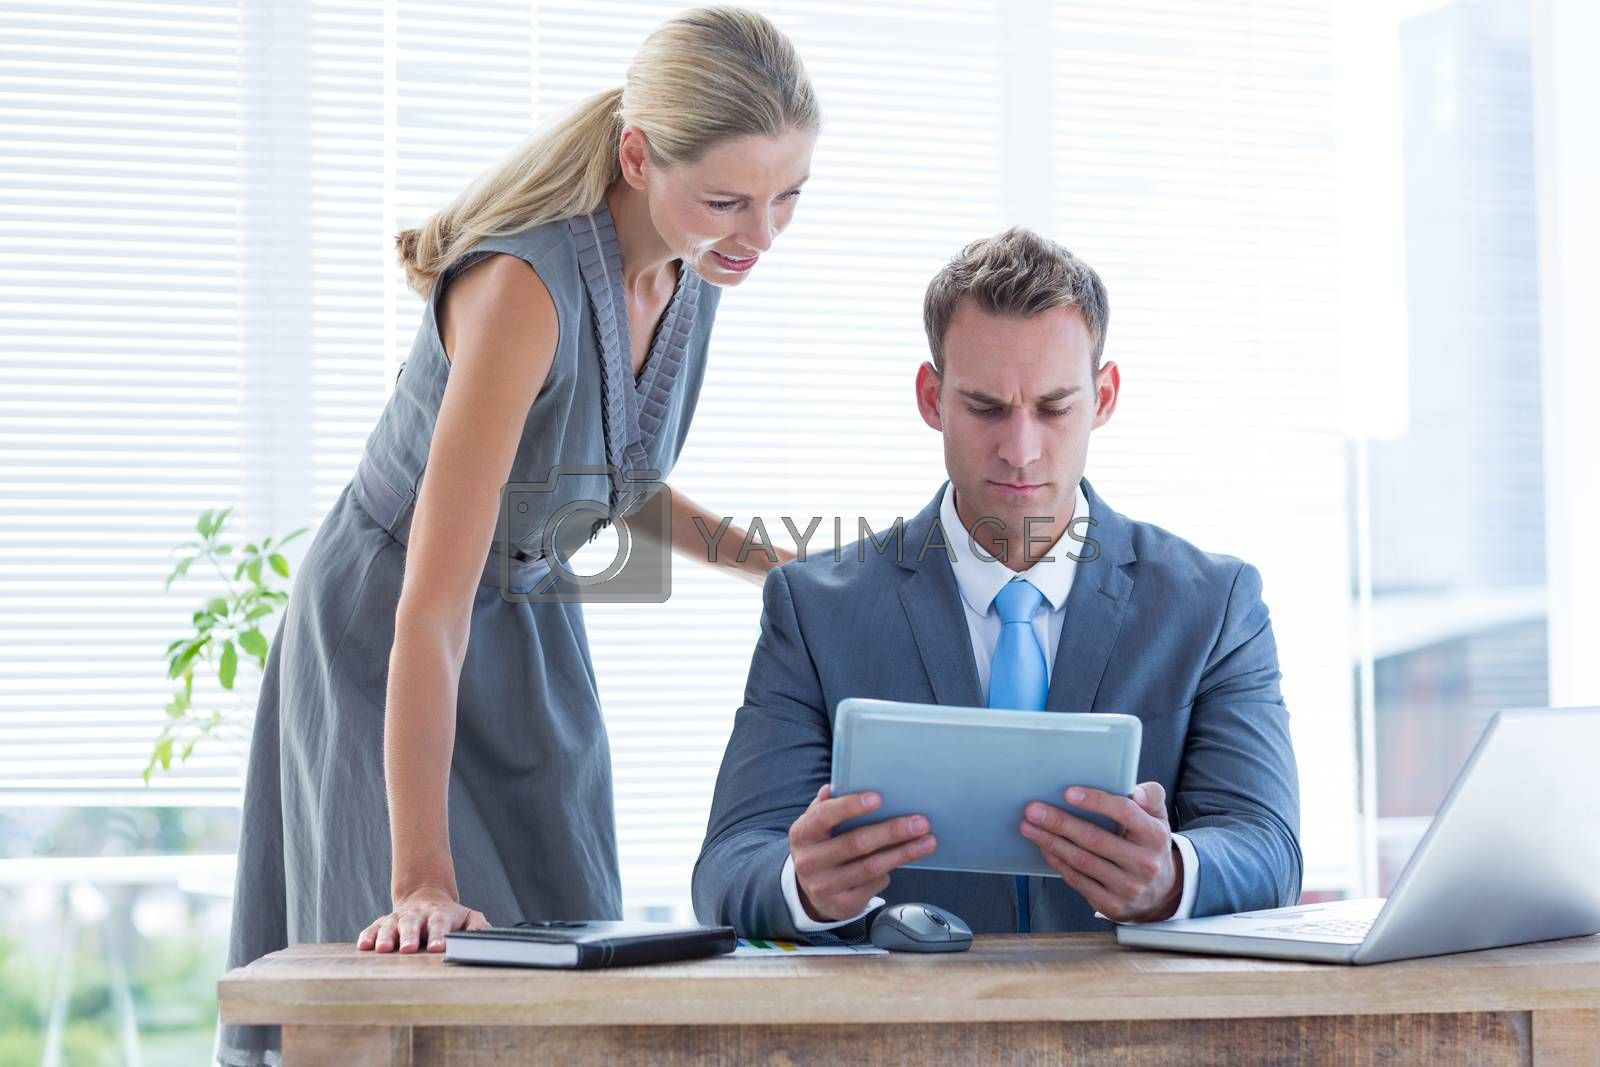 Royalty free image of Serious colleagues working together on tablet by Wavebreakmedia